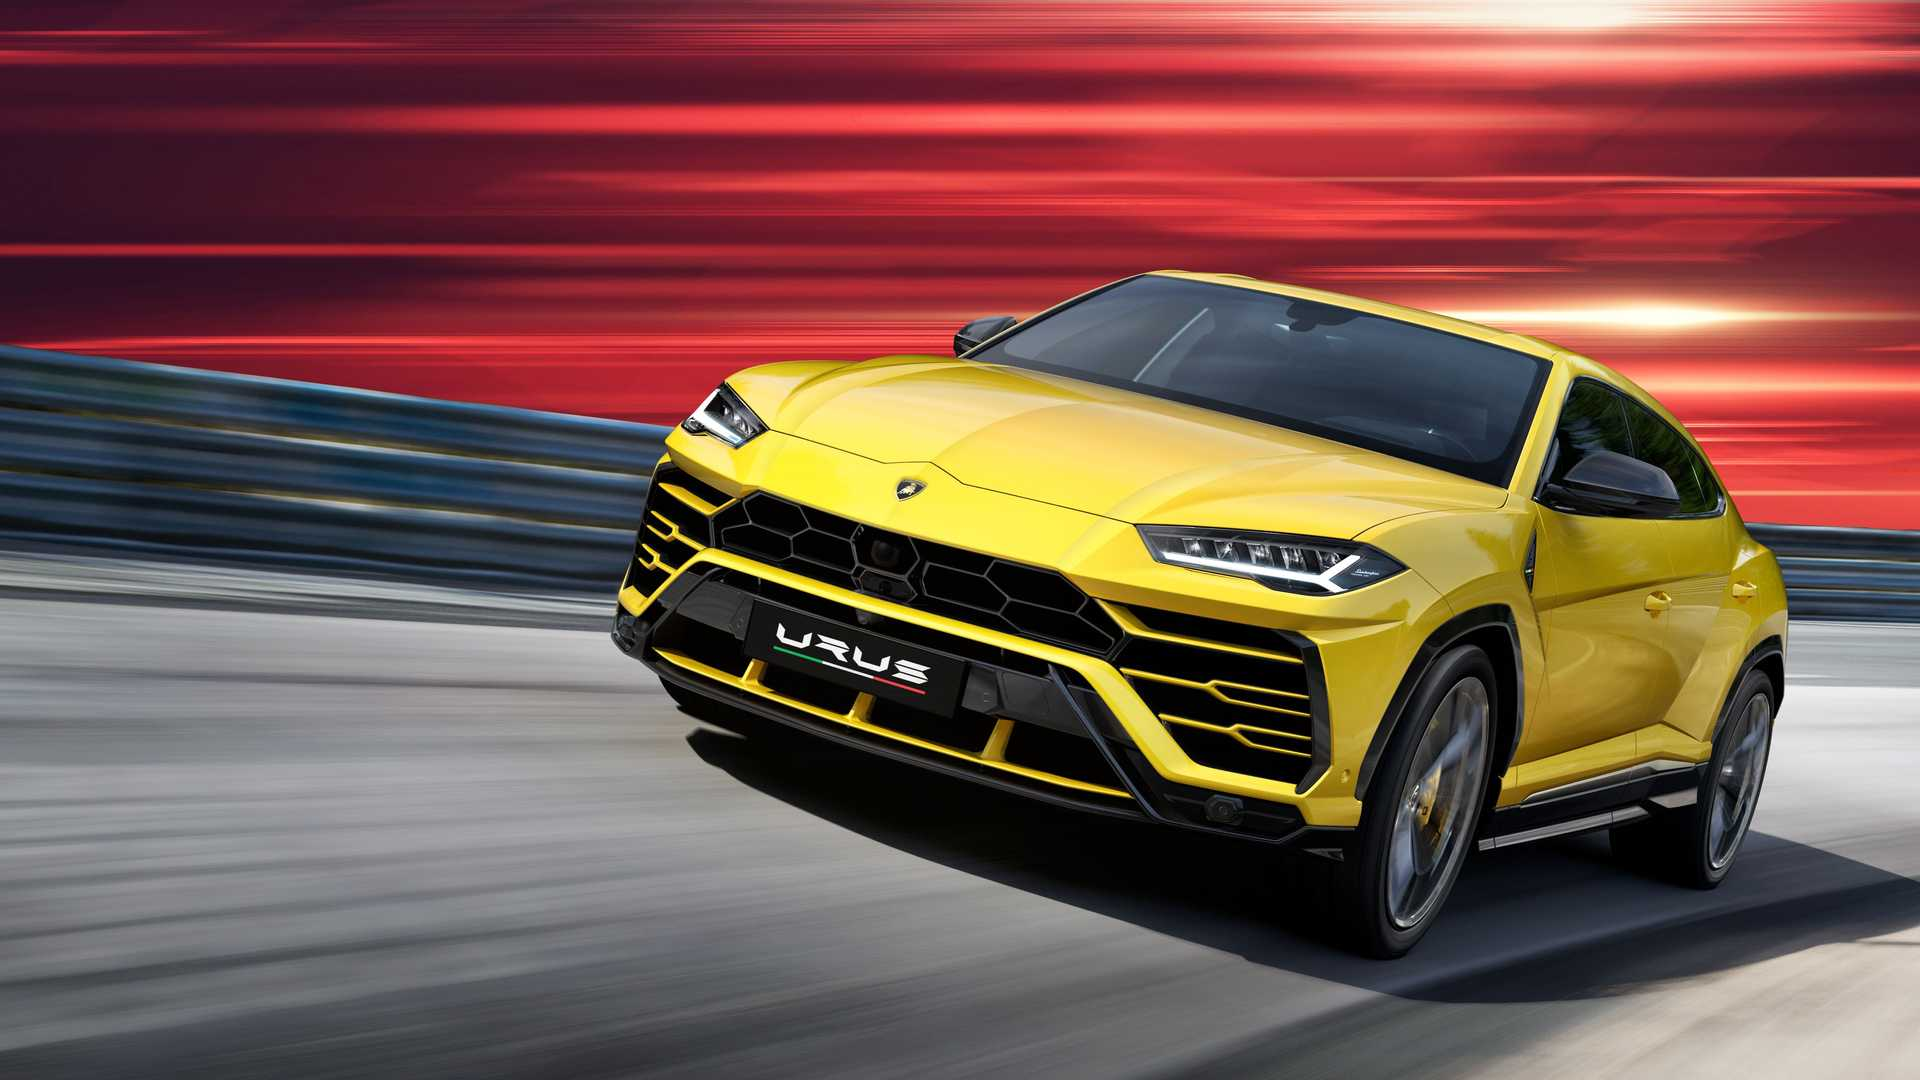 Fastest Suvs In The World For 2021 Best 0 60 And Mph Motor1 Com